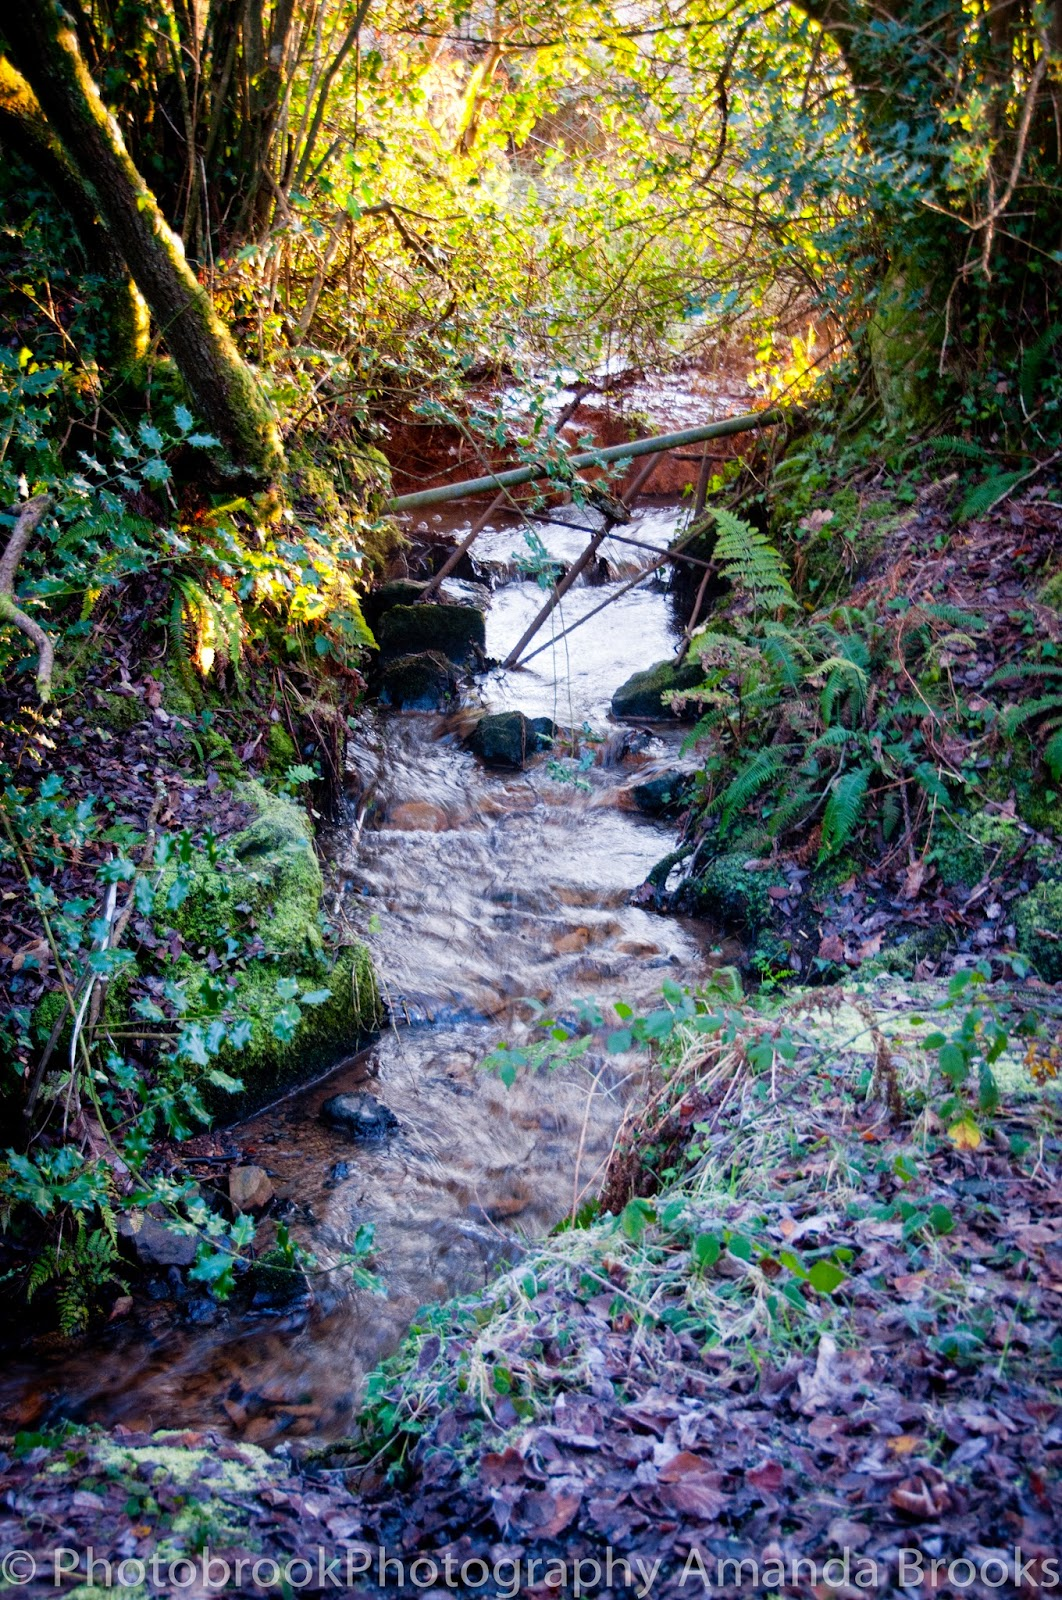 Ruthvoes stream in Cornwall